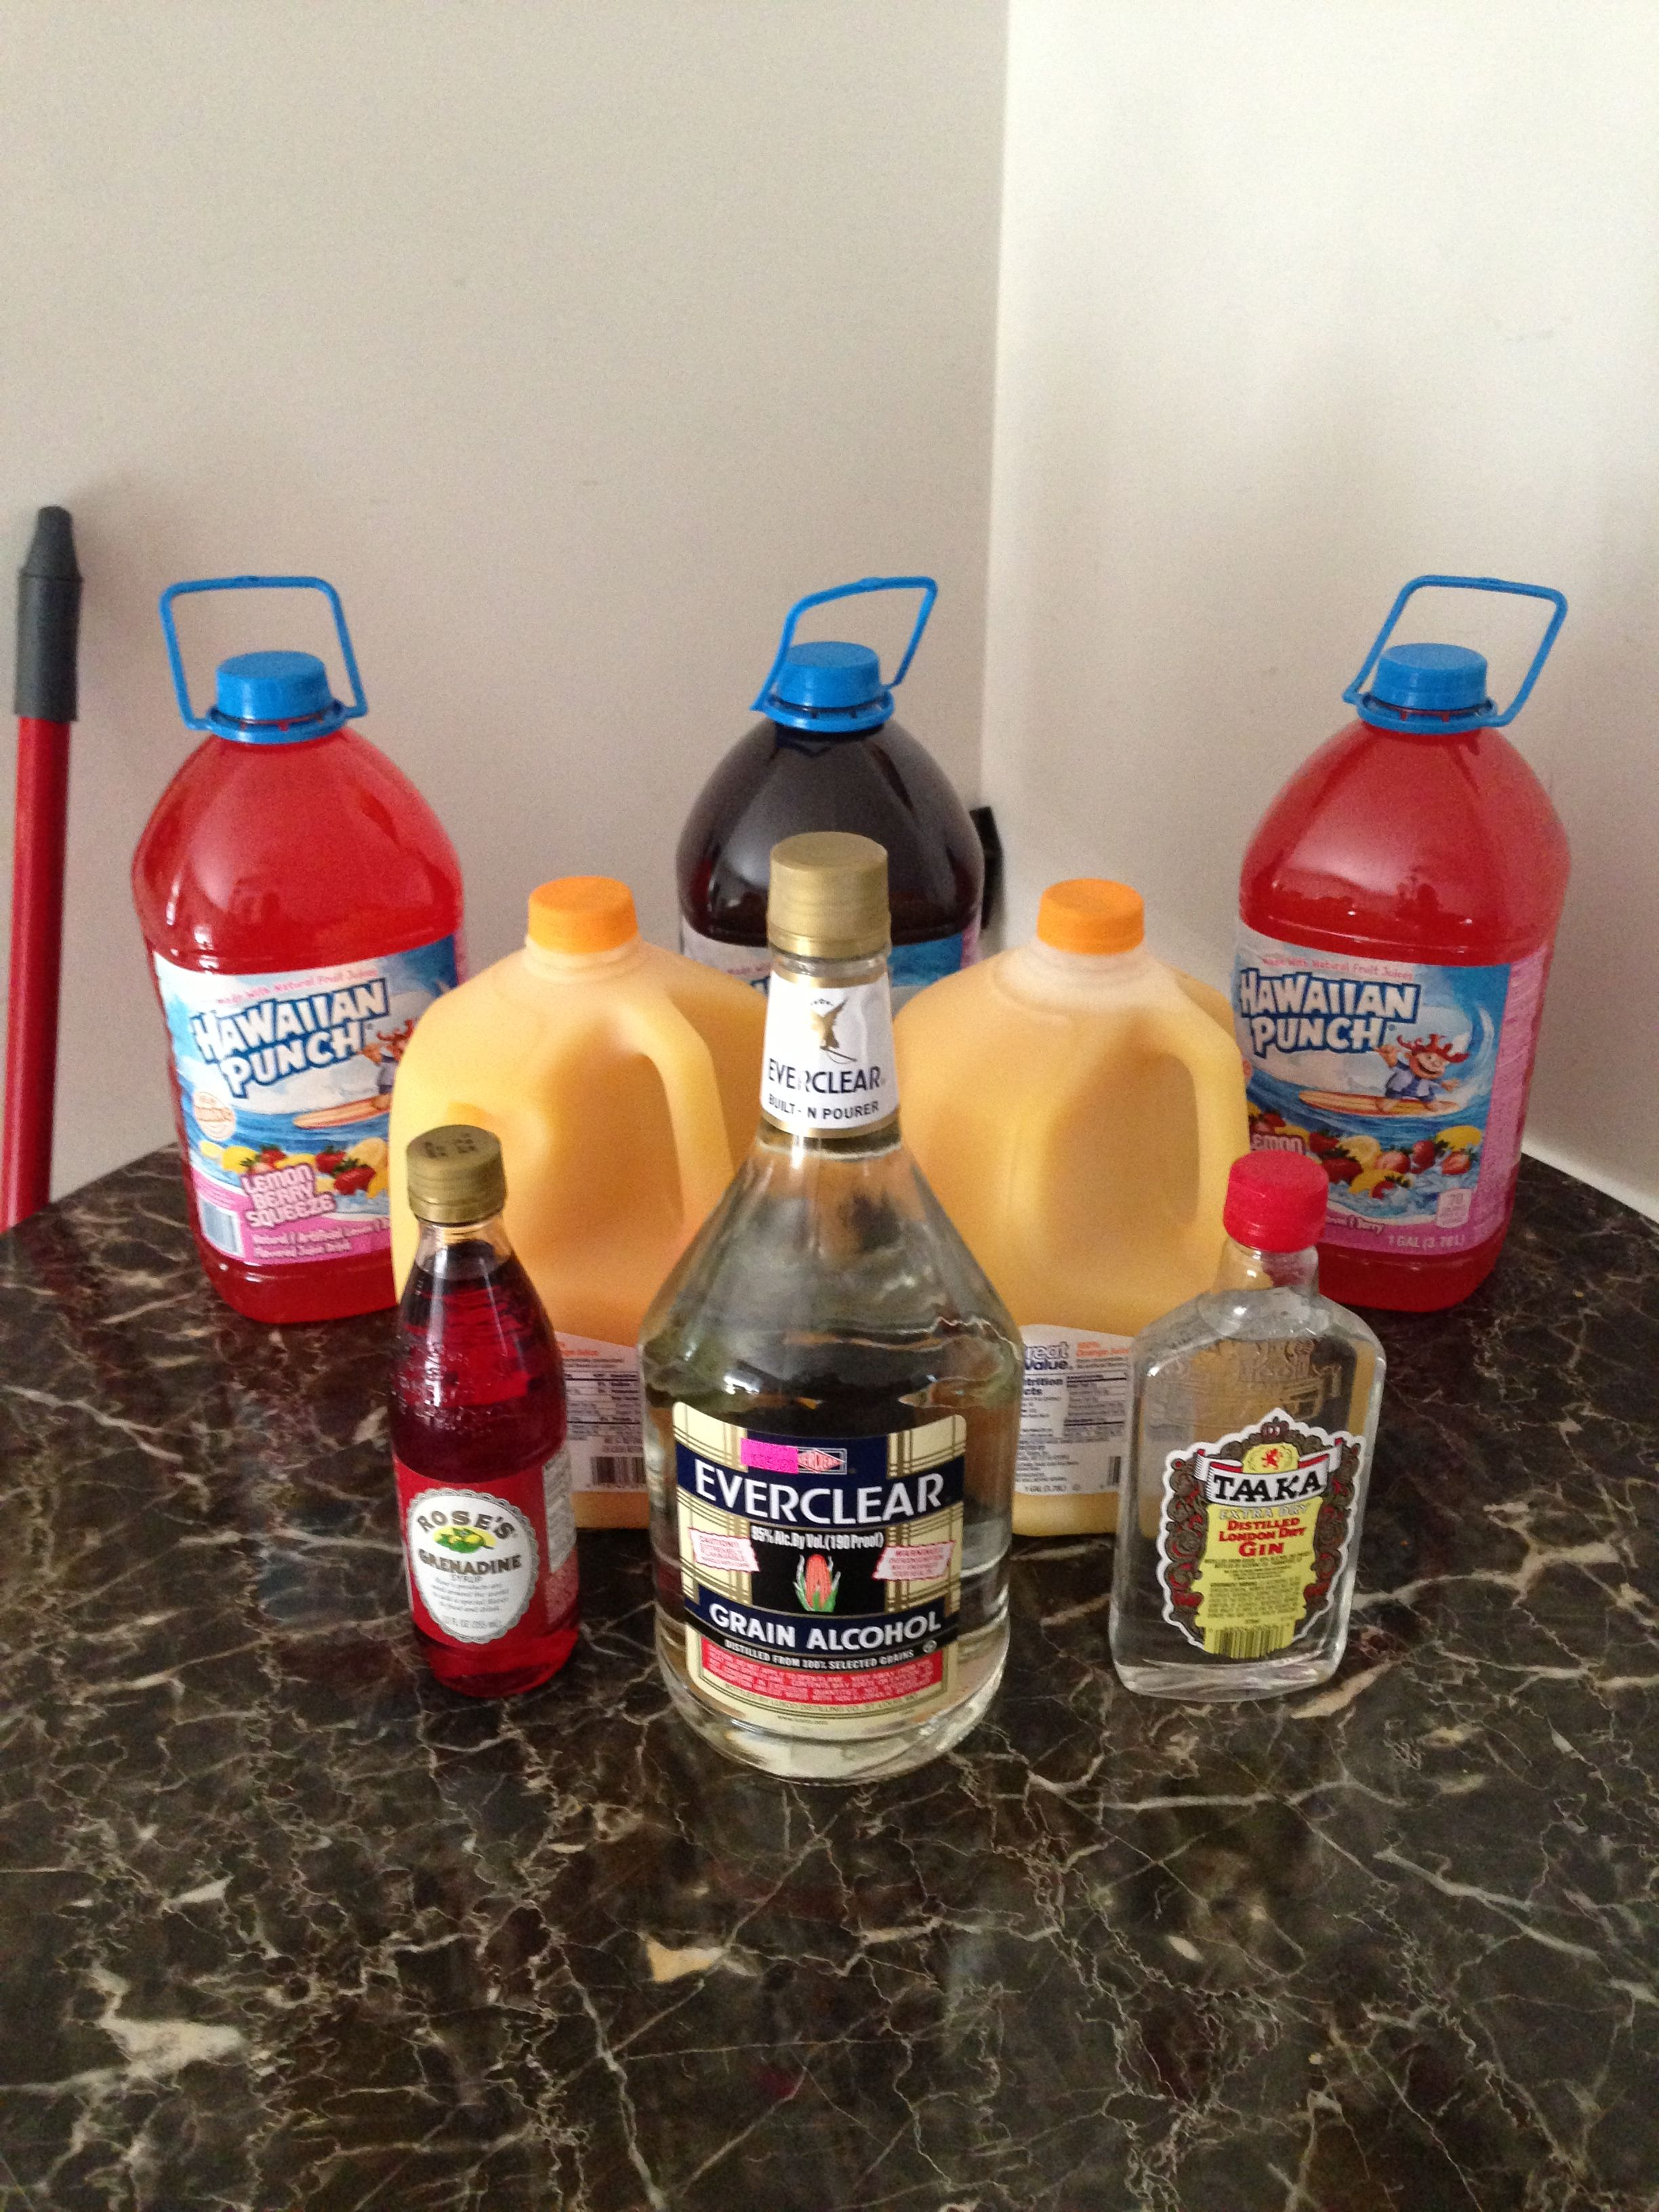 Hunch Punch The Best Hunch Punch Ever 3 Gallon Hawaiian Punch Any Flavor 2 Gallon Orange Juice Pulp Fr Jungle Juice Alcoholic Jungle Juice Drinks